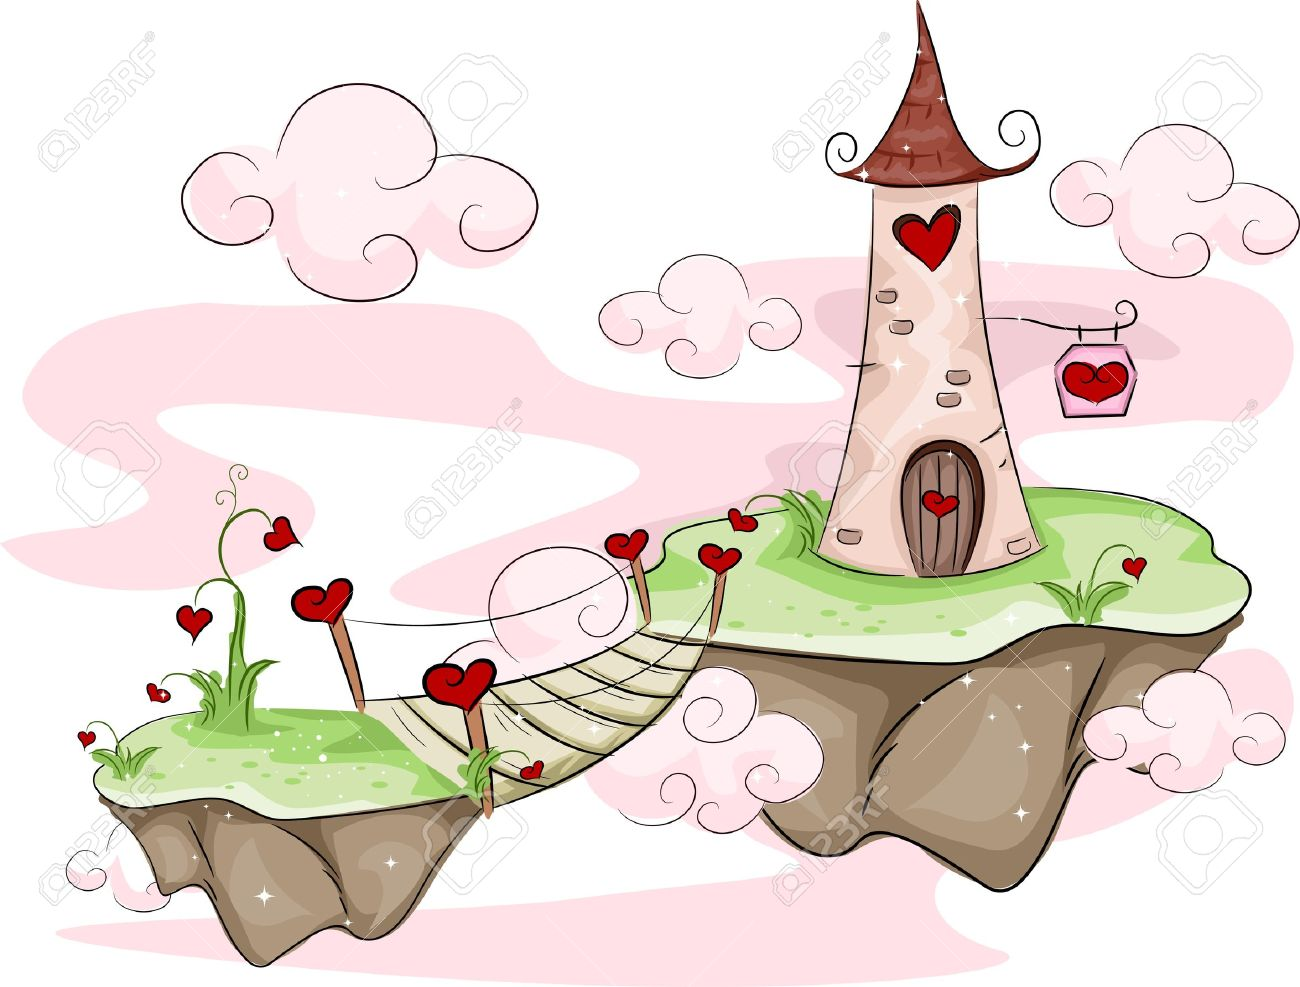 Illustration Of Floating Love Islands With A Tower And Bridge.